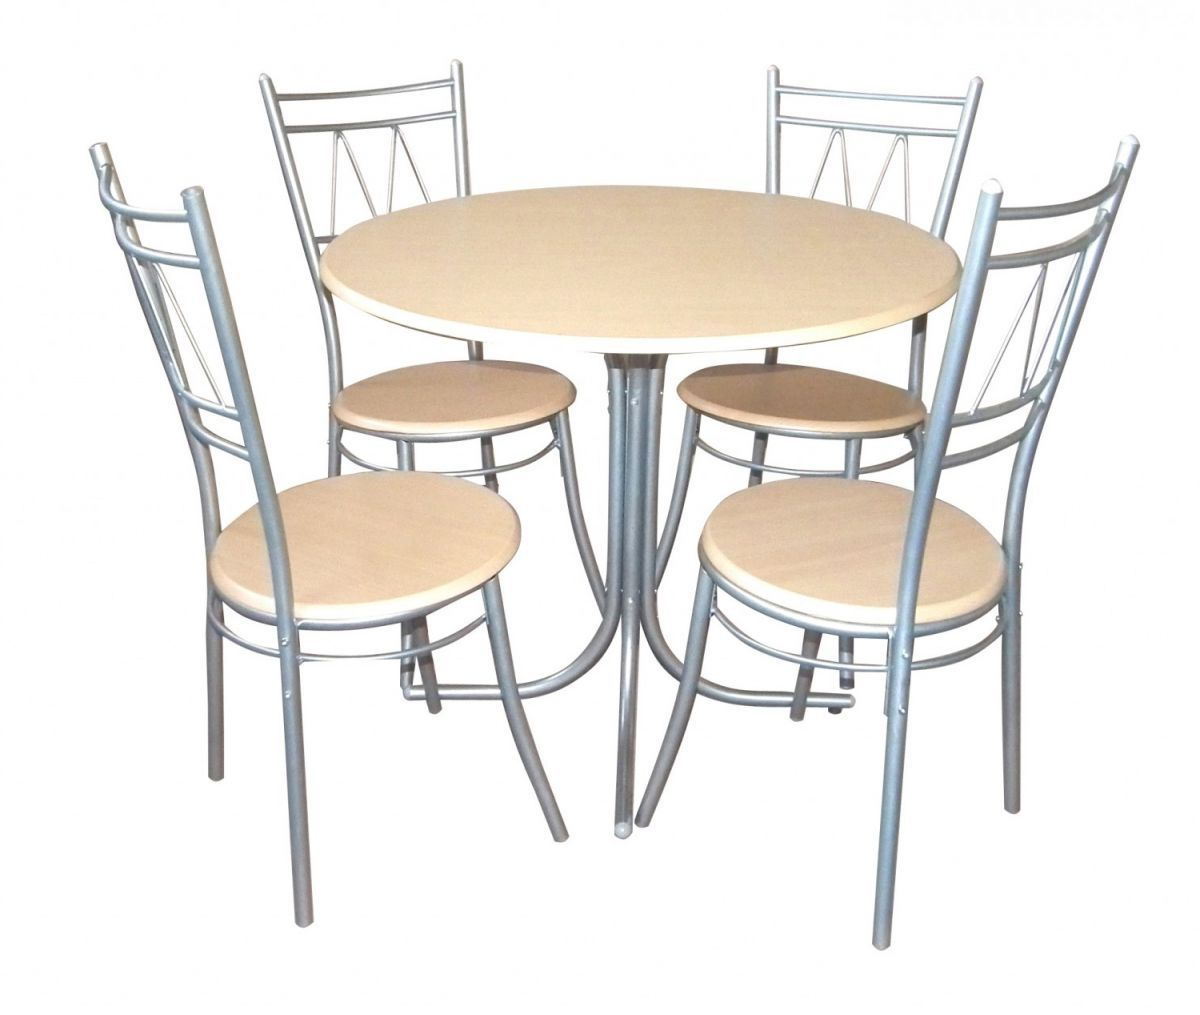 Stainless Steel Kitchen Tables And Chairs | http ...